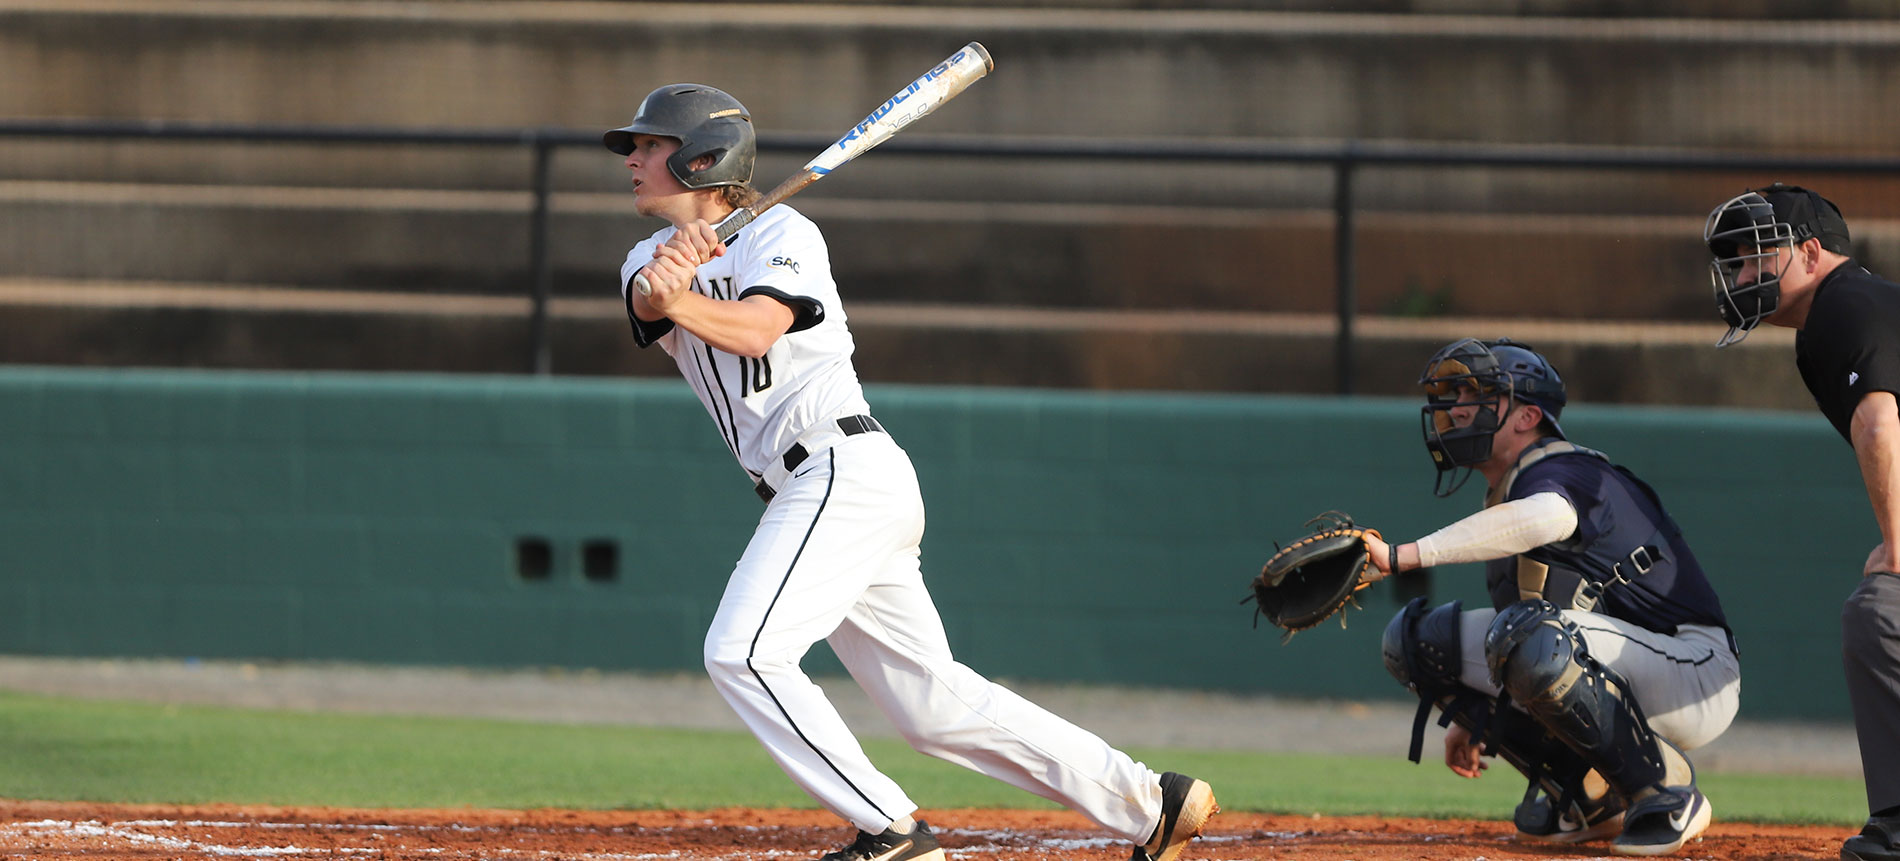 Trojans Split Crucial South Atlantic Conference Doubleheader with Coker